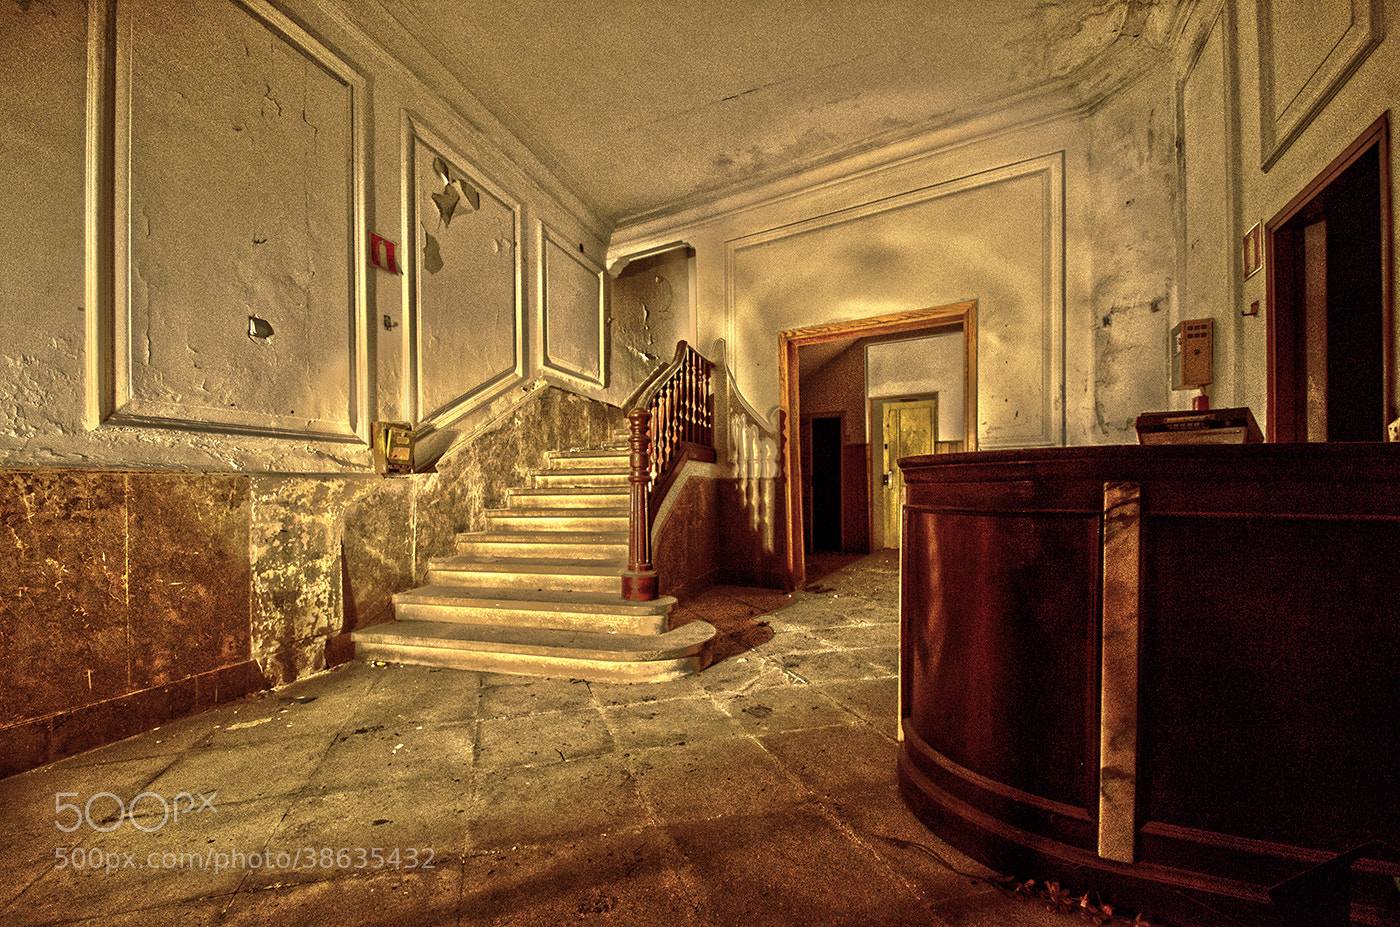 Photograph dirty hotel by Albert Galì on 500px